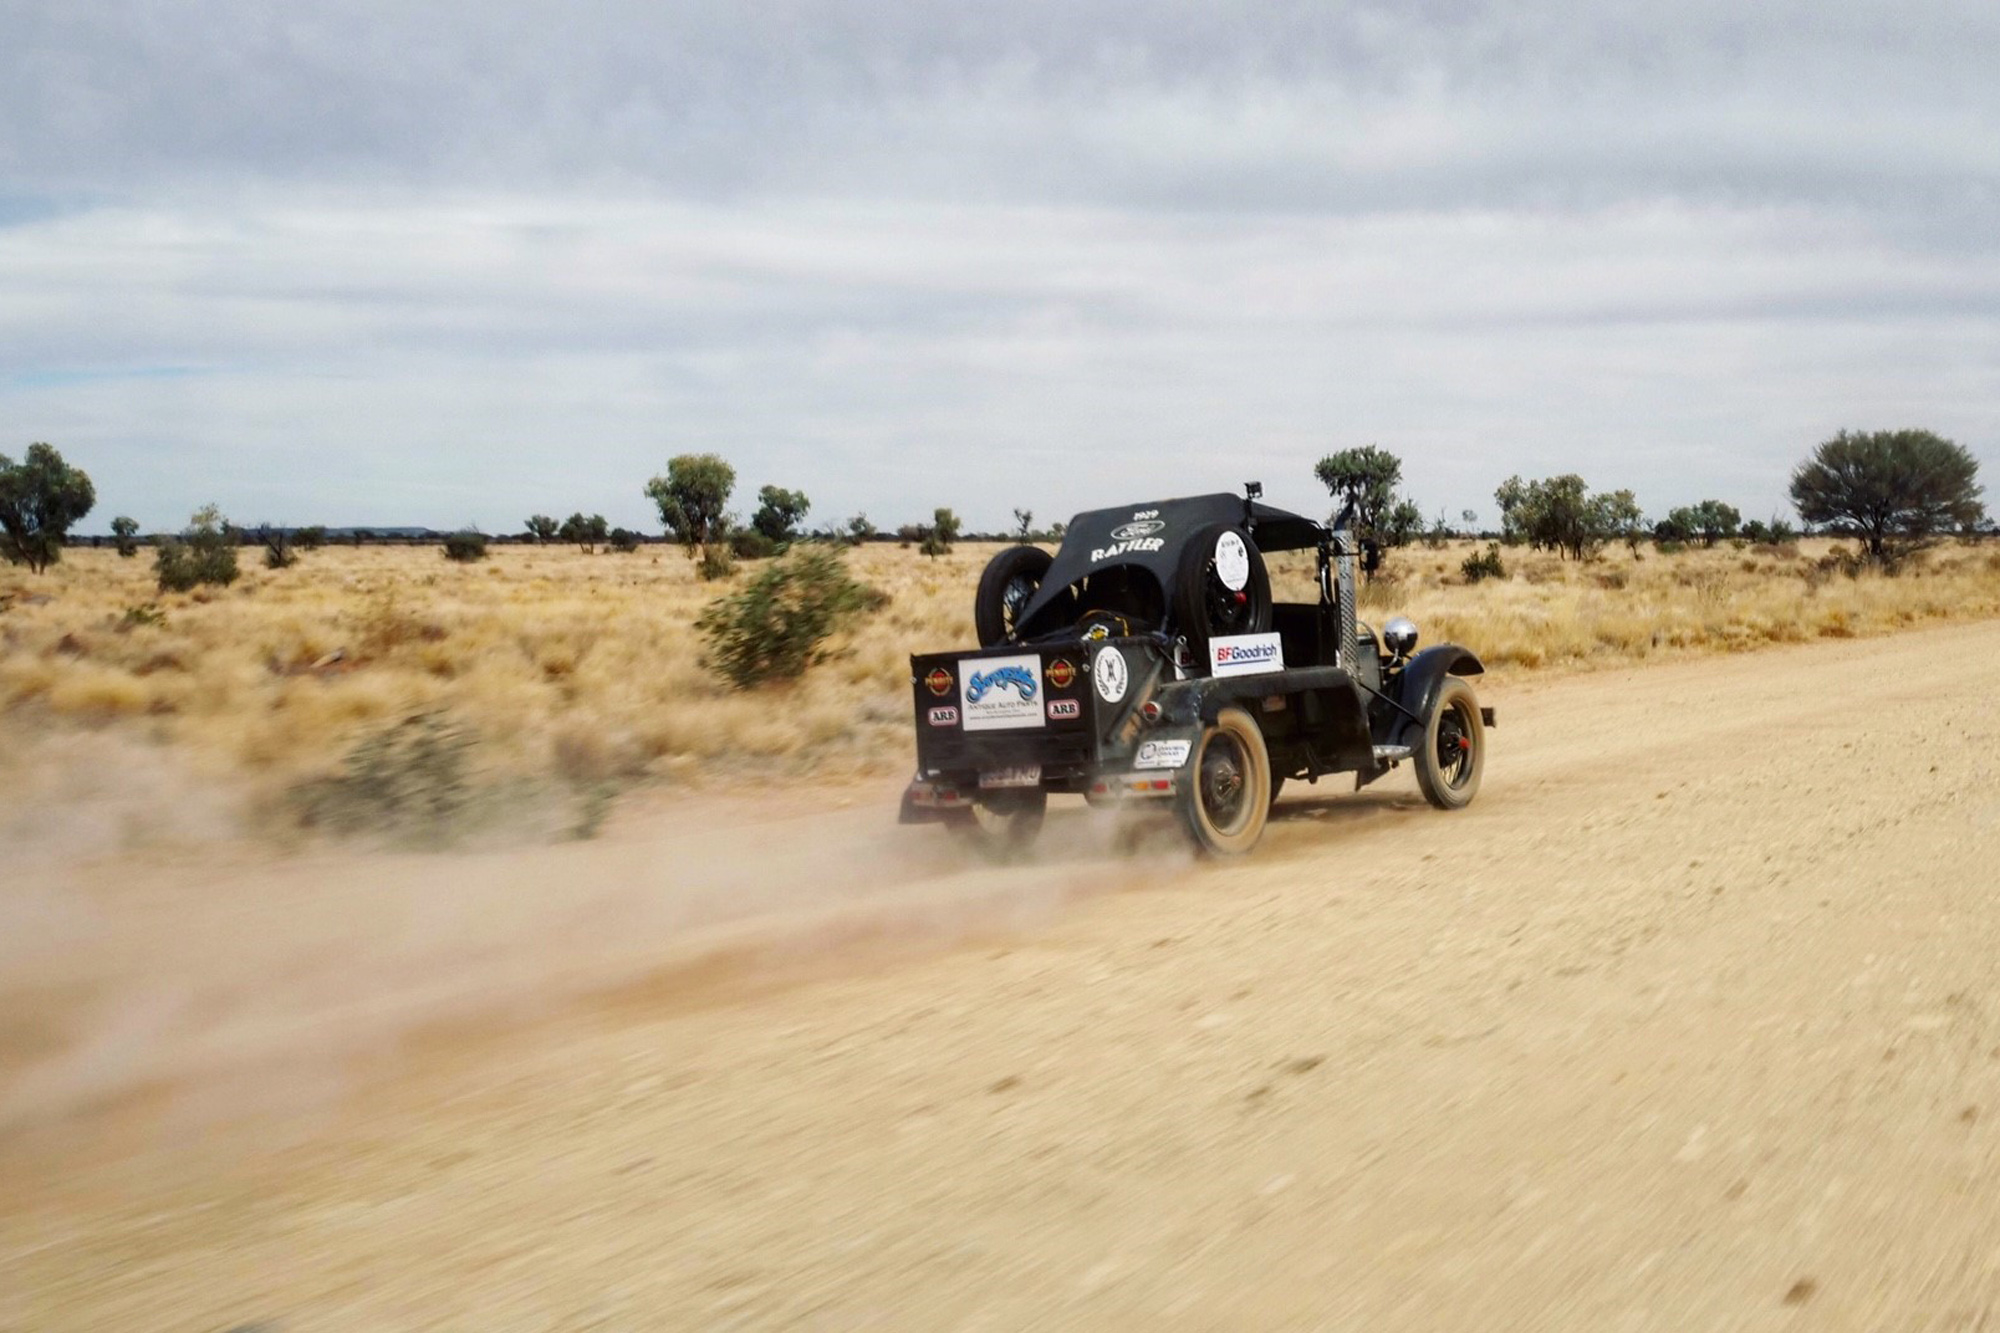 Vehicle speeding along dirt road in Australia